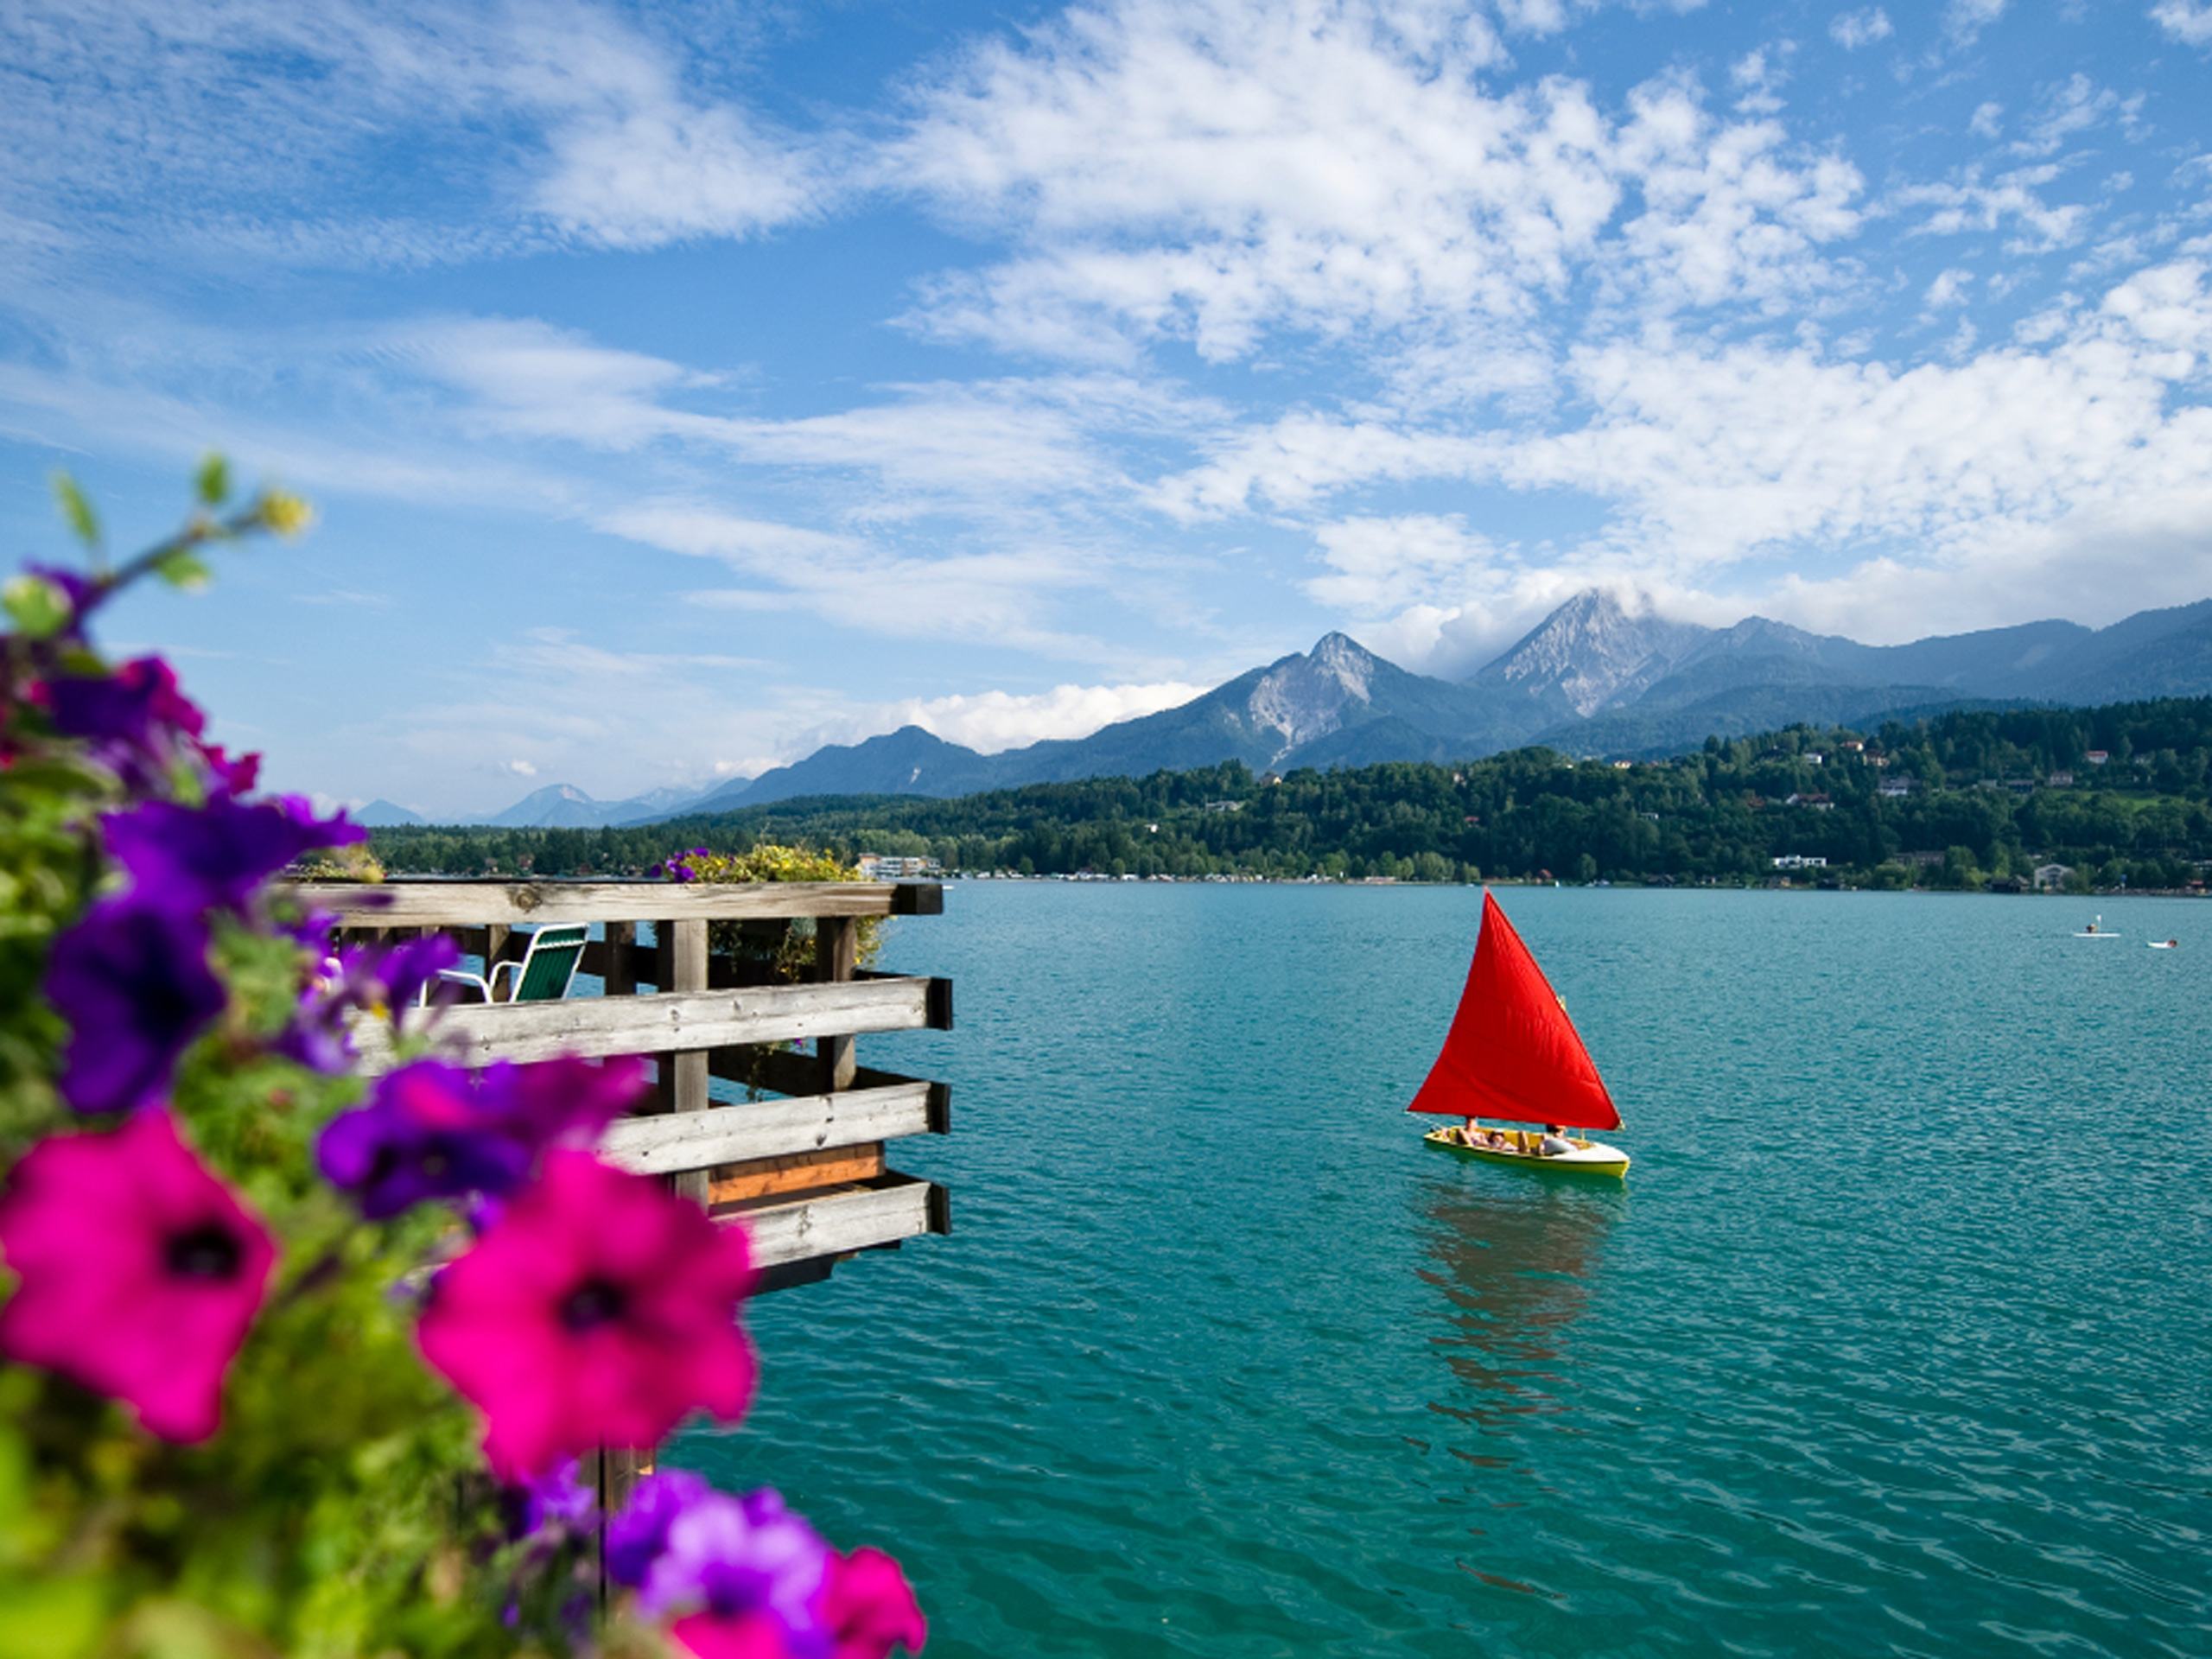 Boat with a red sail on the Lake Worthersee